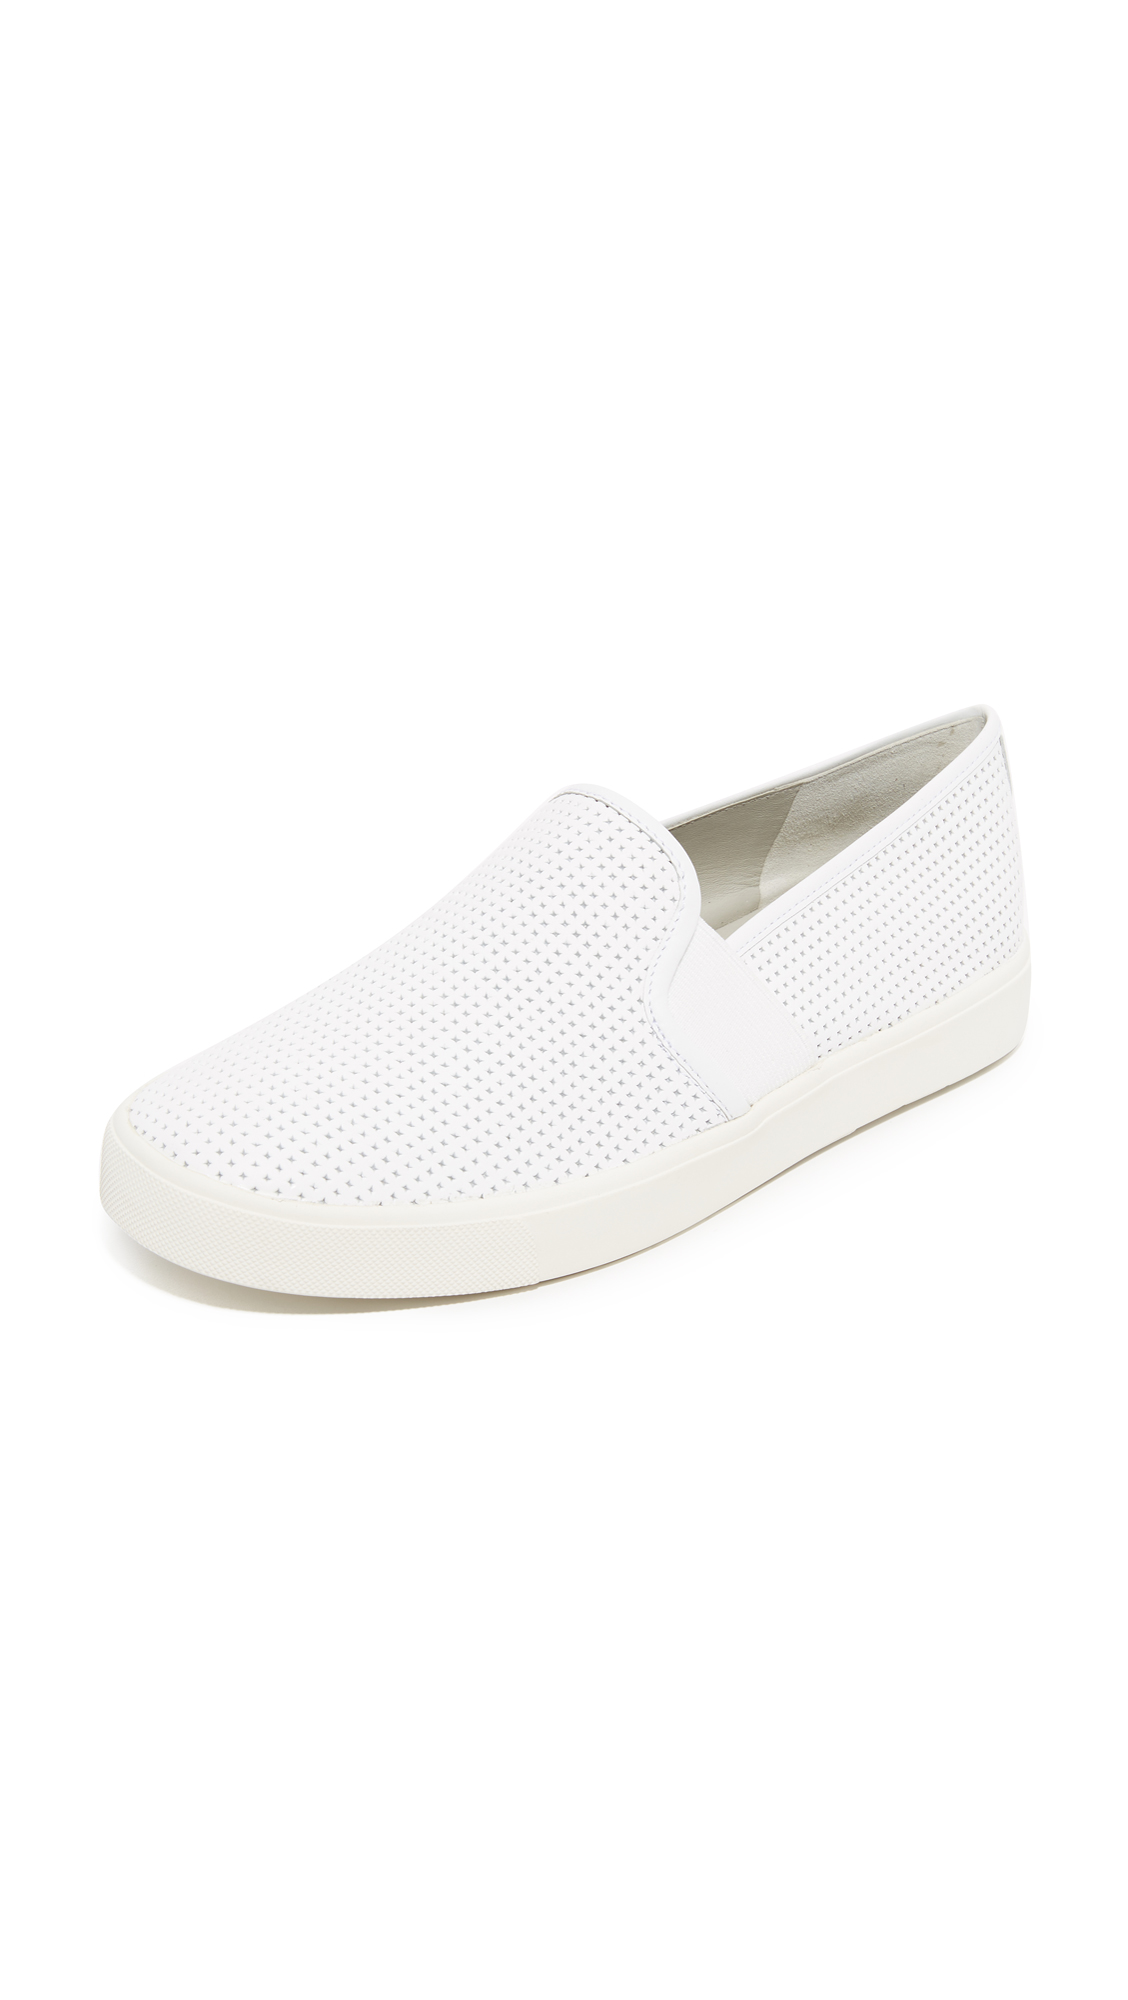 Vince Blair Slip On Sneakers - White